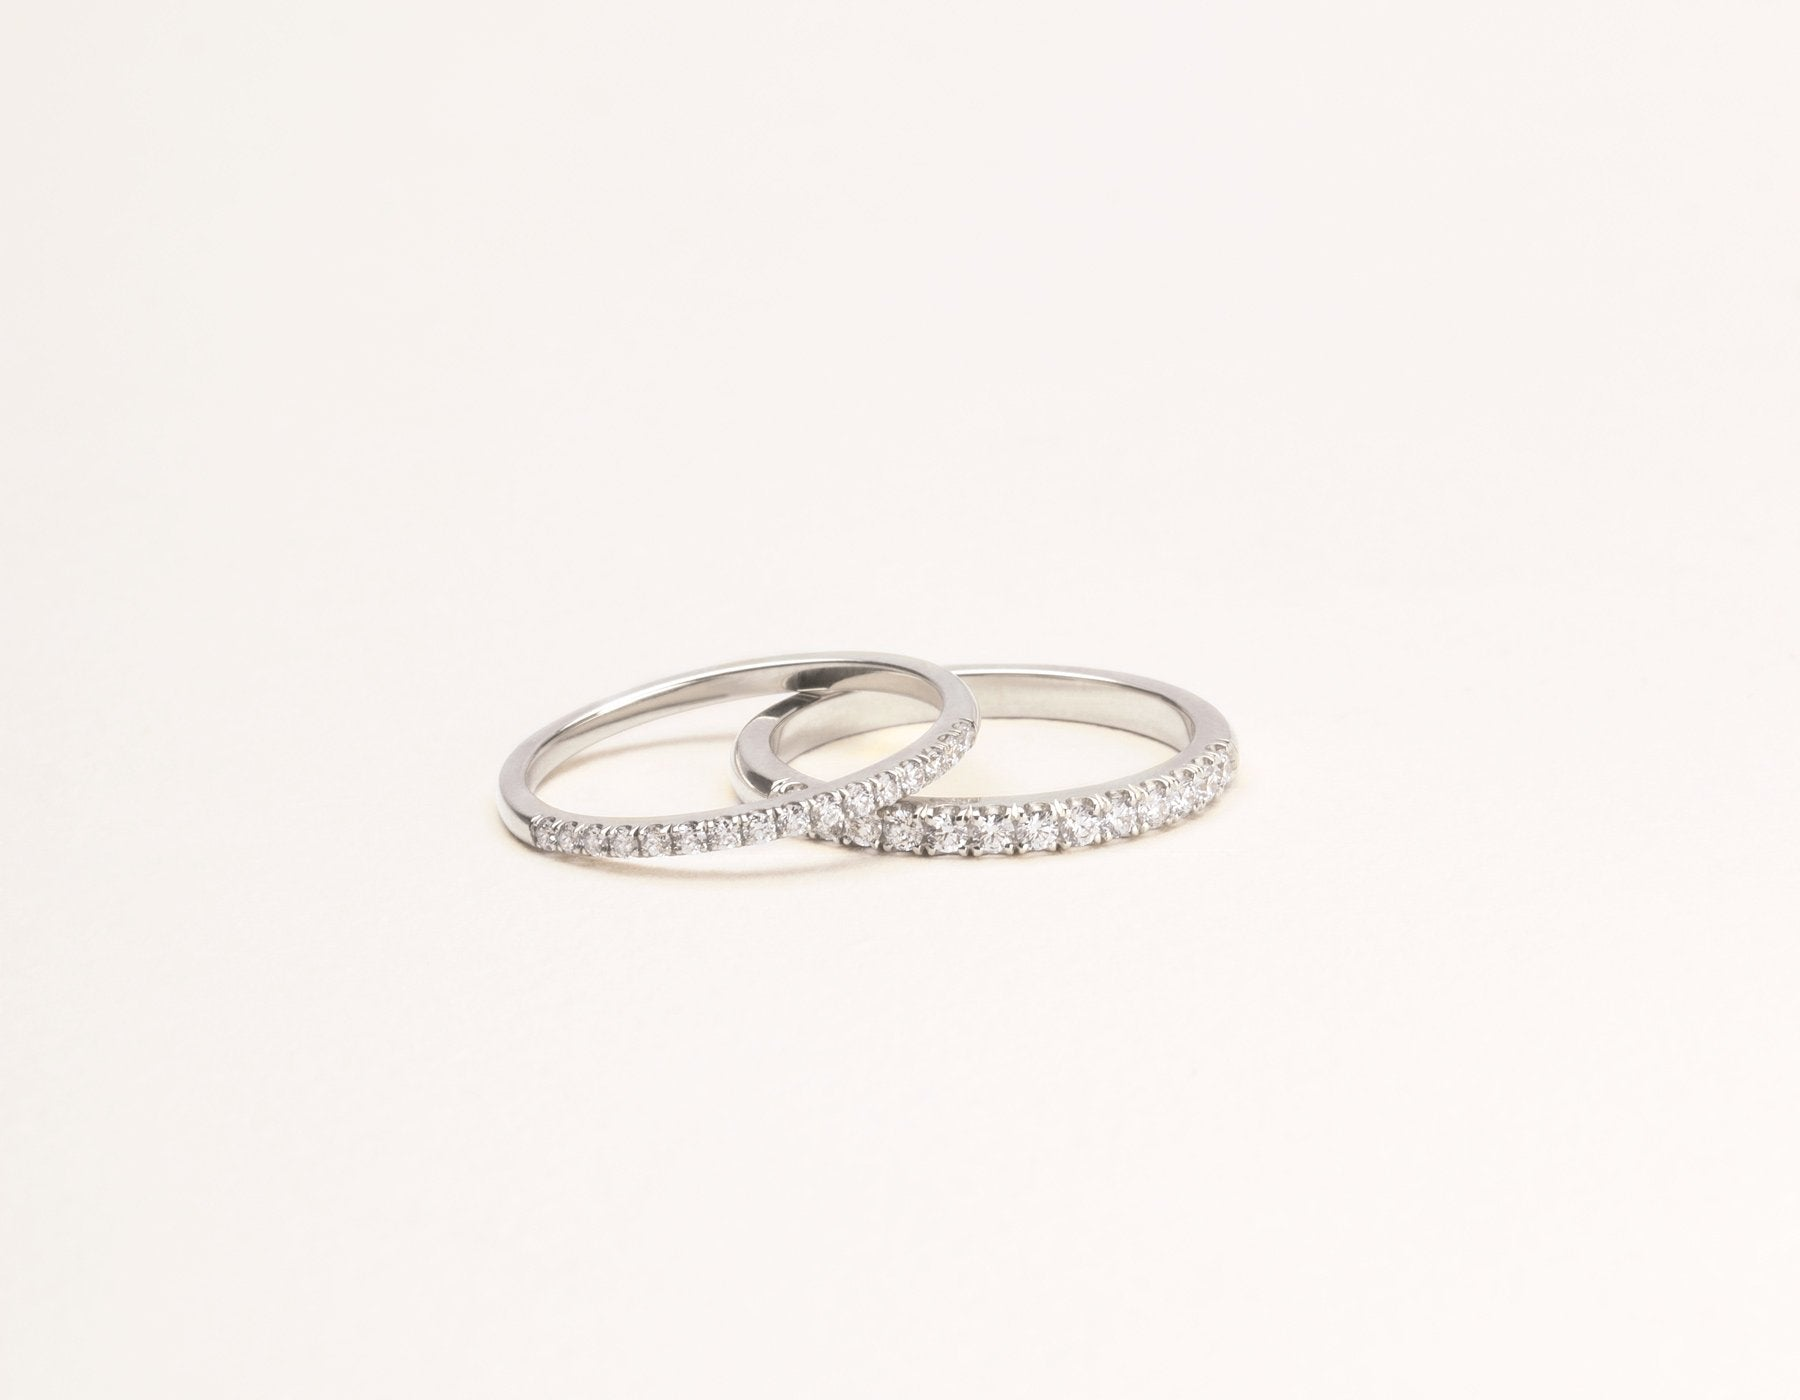 Classic minimalist Large Diamond Pave Band ring pair Vrai & Oro sustainable jewelry, 14K White Gold